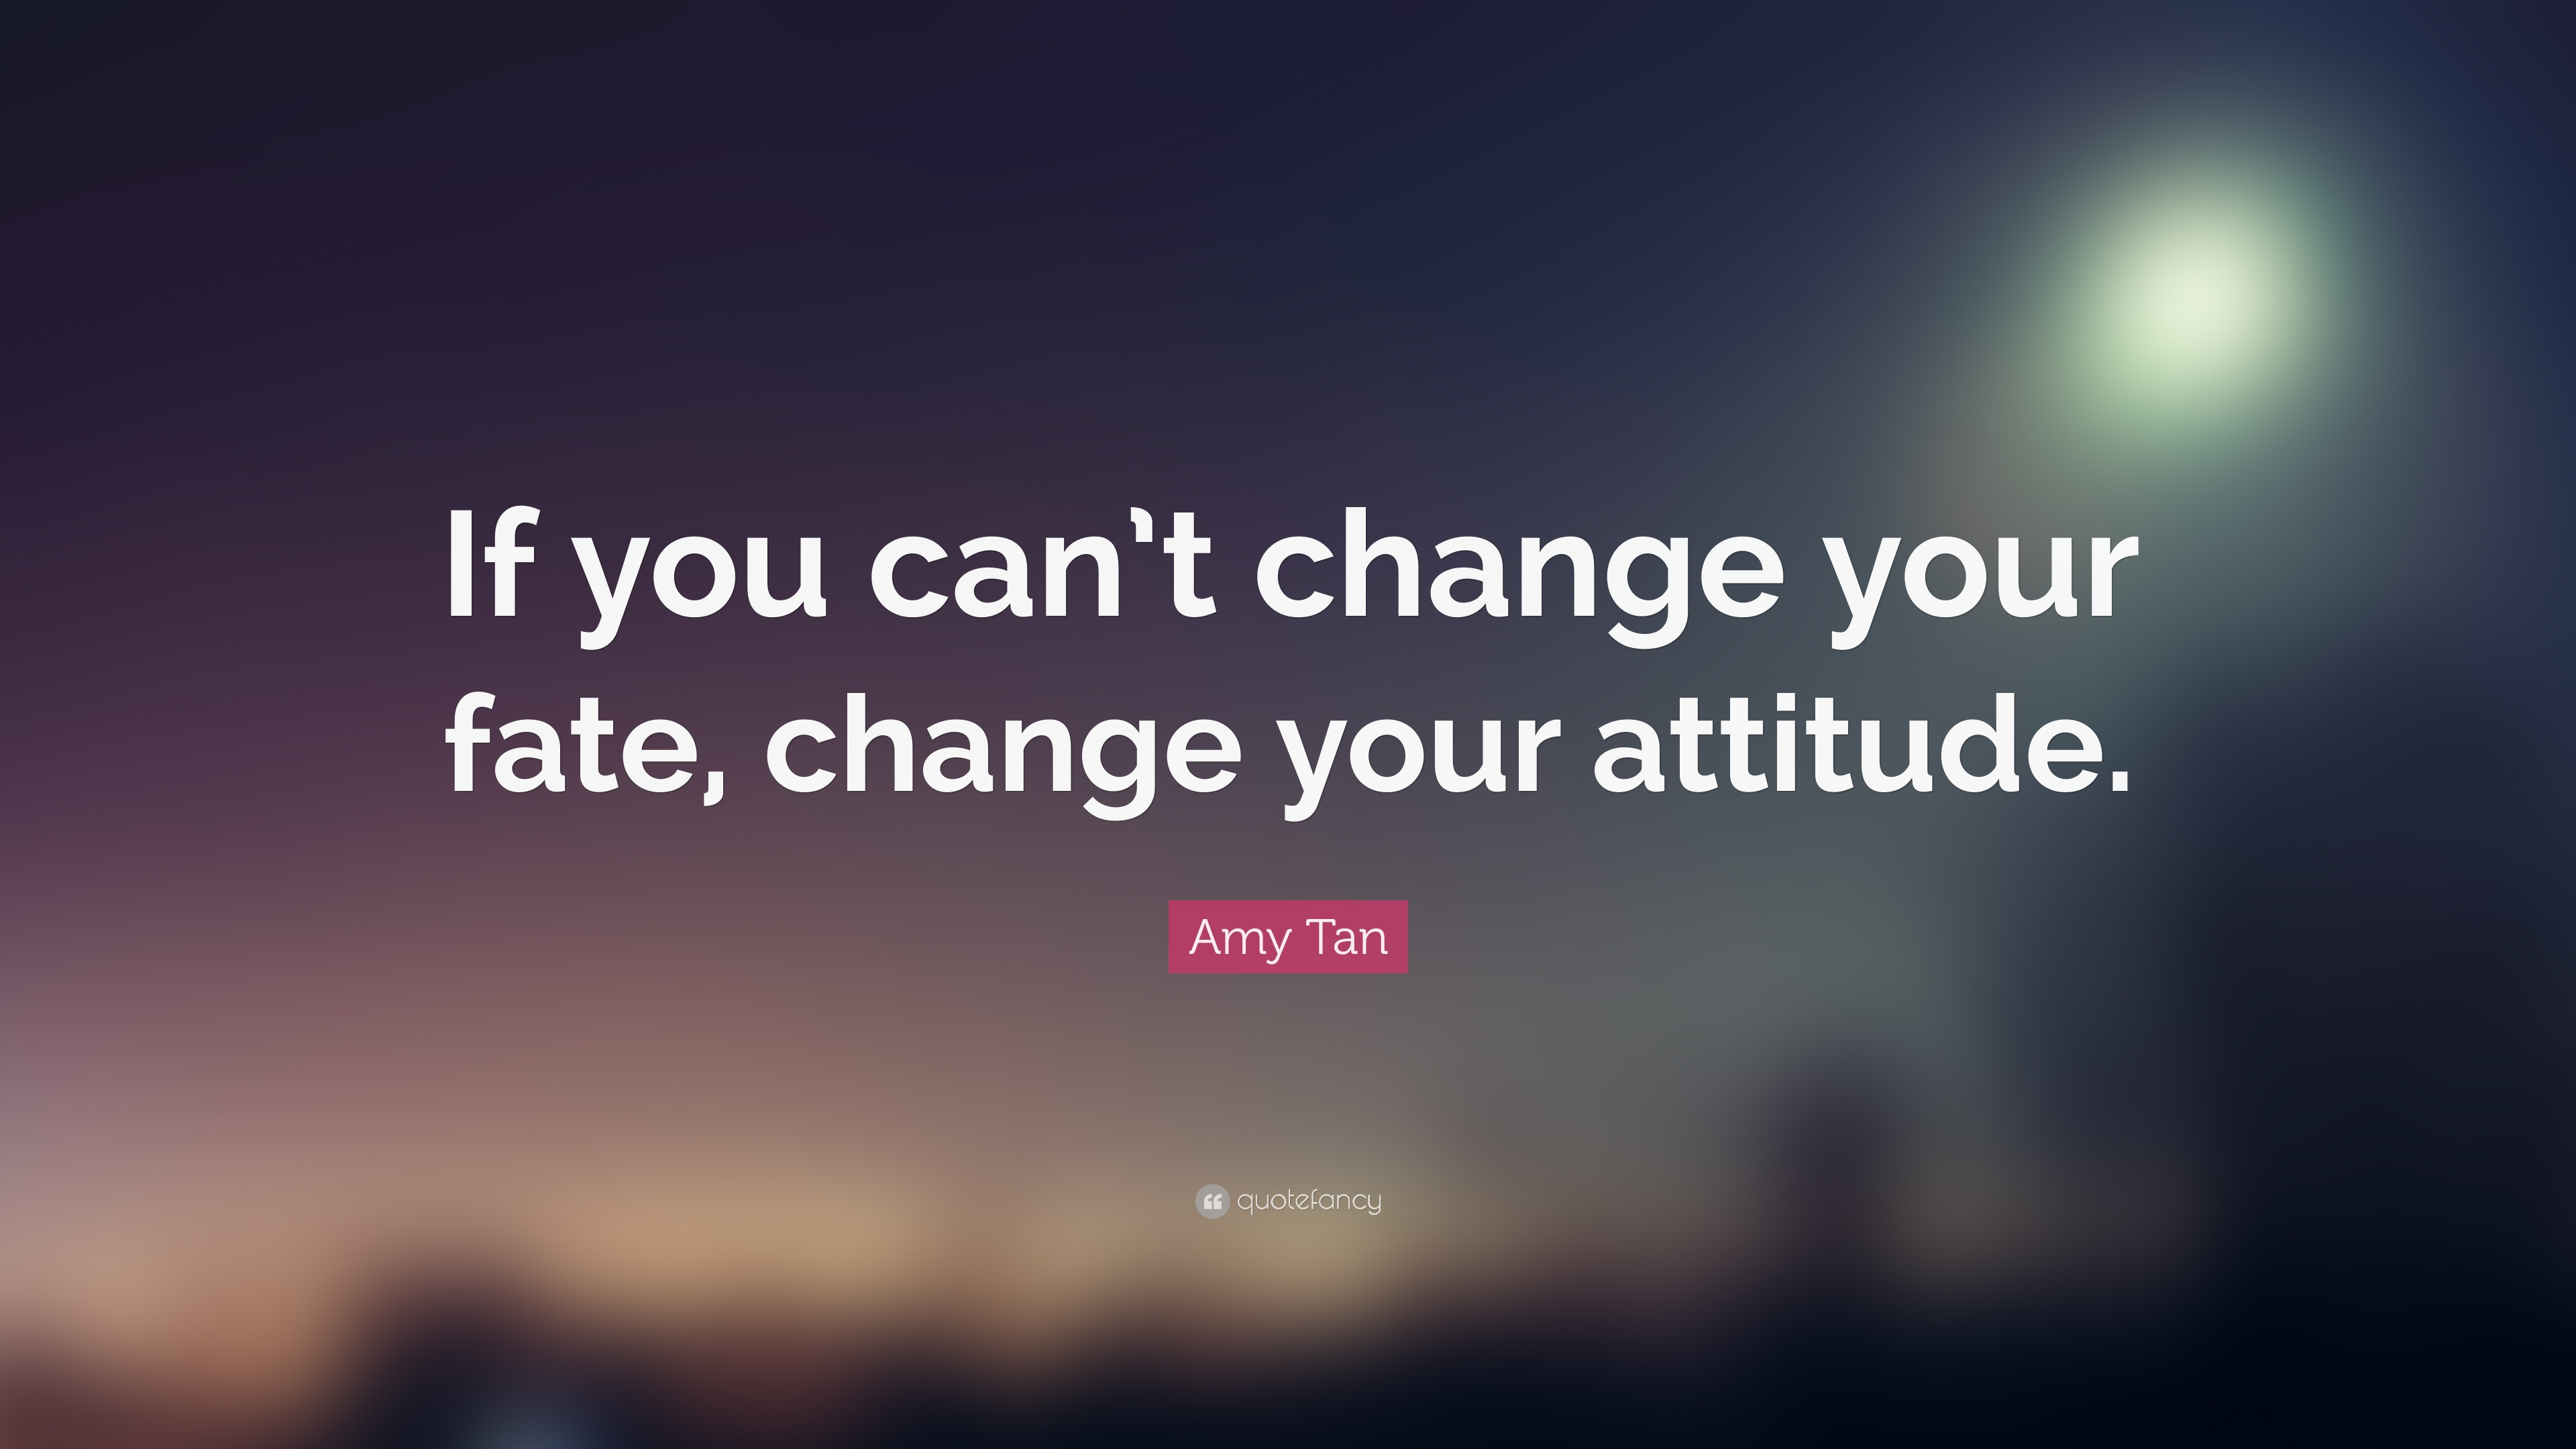 High Quality Amy Tan Quote: U201cIf You Canu0027t Change Your Fate, Change Your Photo Gallery